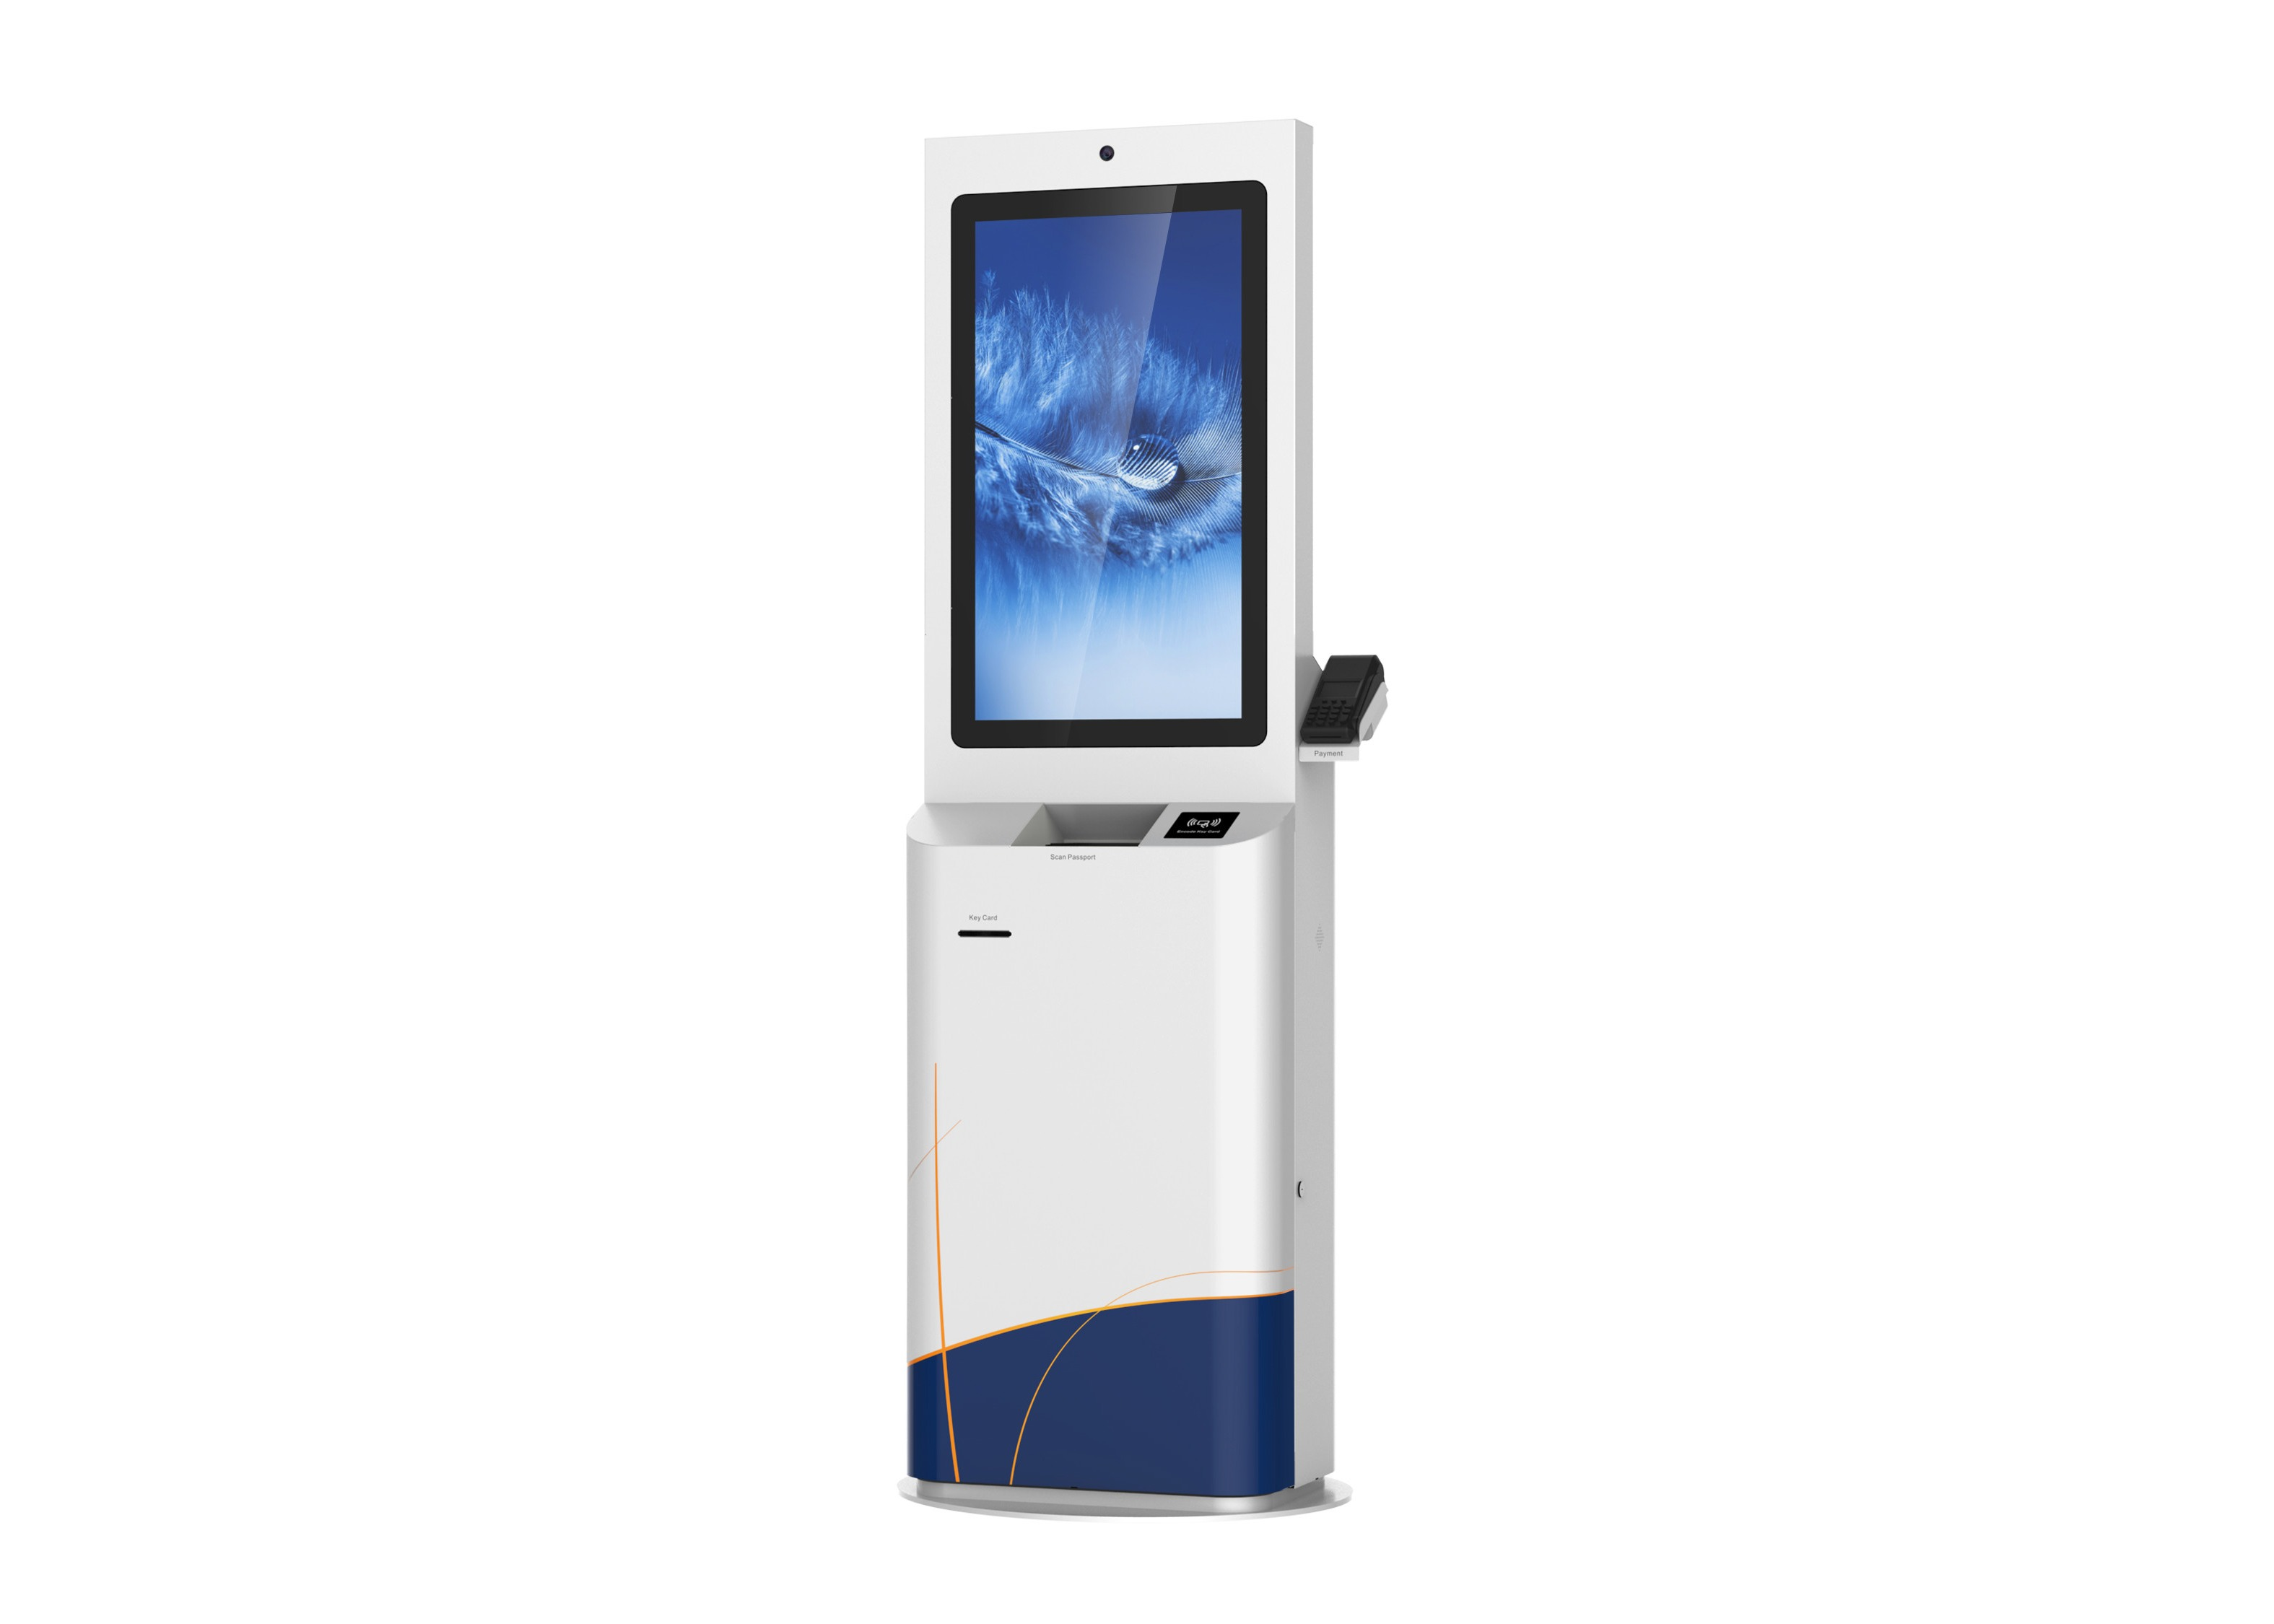 "UPS Windows XP Customer Service Kiosk 32"" / 42"" Dual LED / LCD Adverti For Finance"